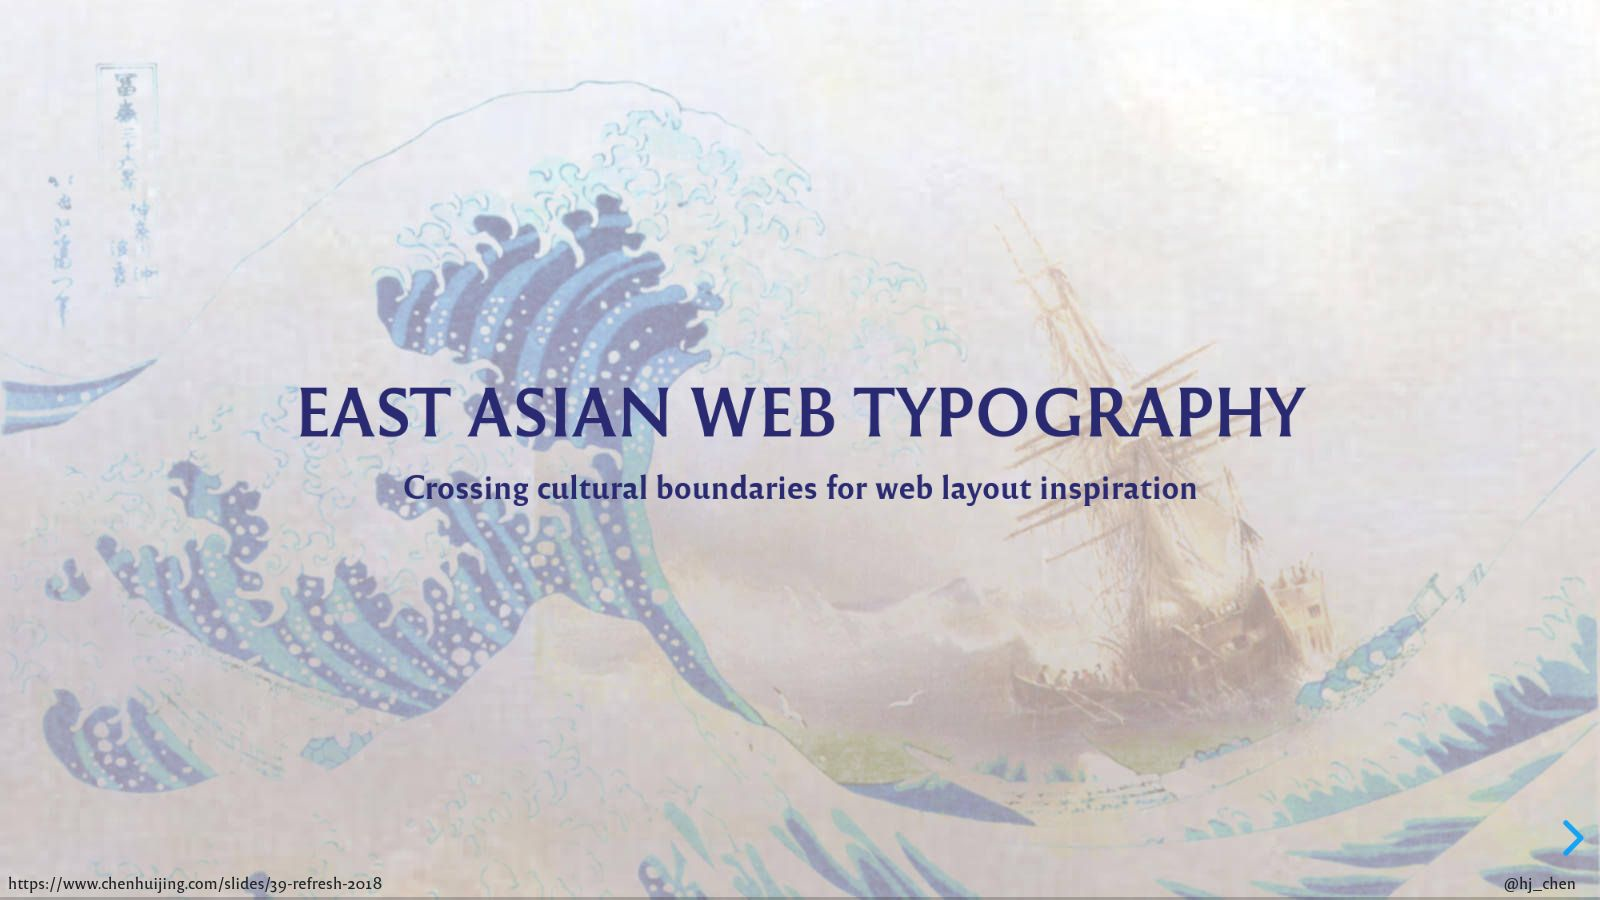 East Asian typography on the web